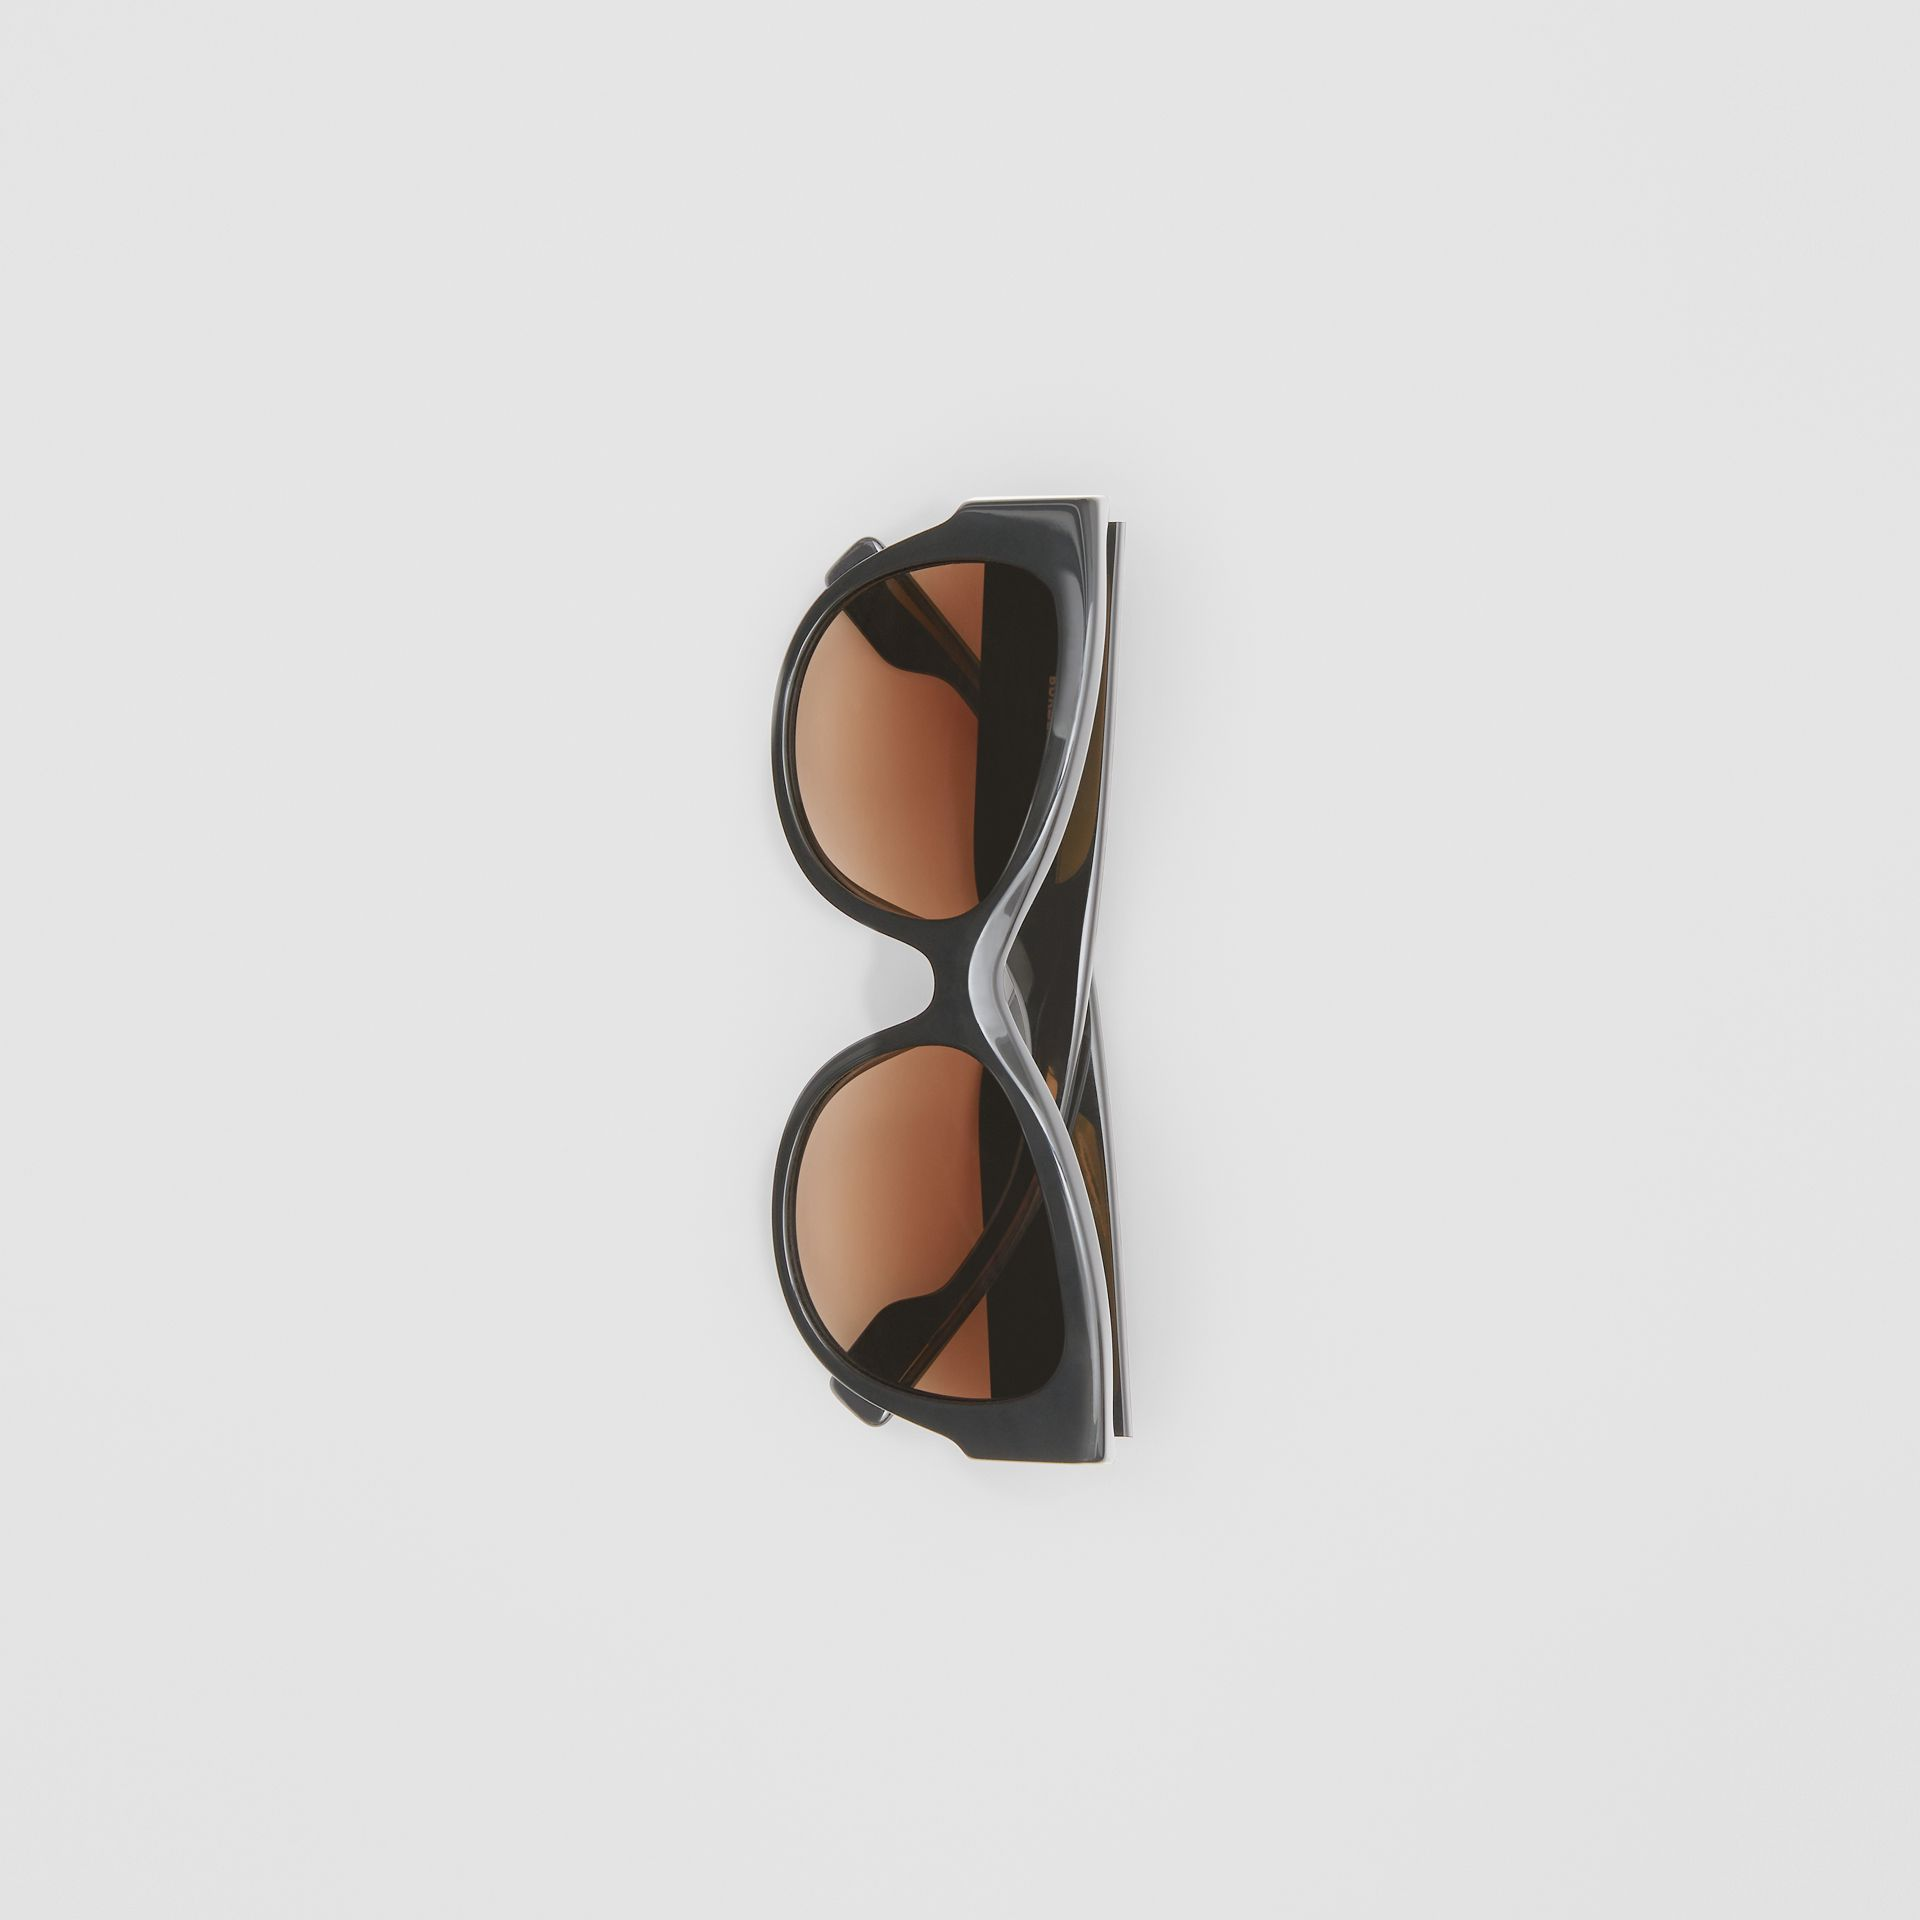 Monogram Detail Butterfly Frame Sunglasses in Black/beige - Women | Burberry United Kingdom - gallery image 2